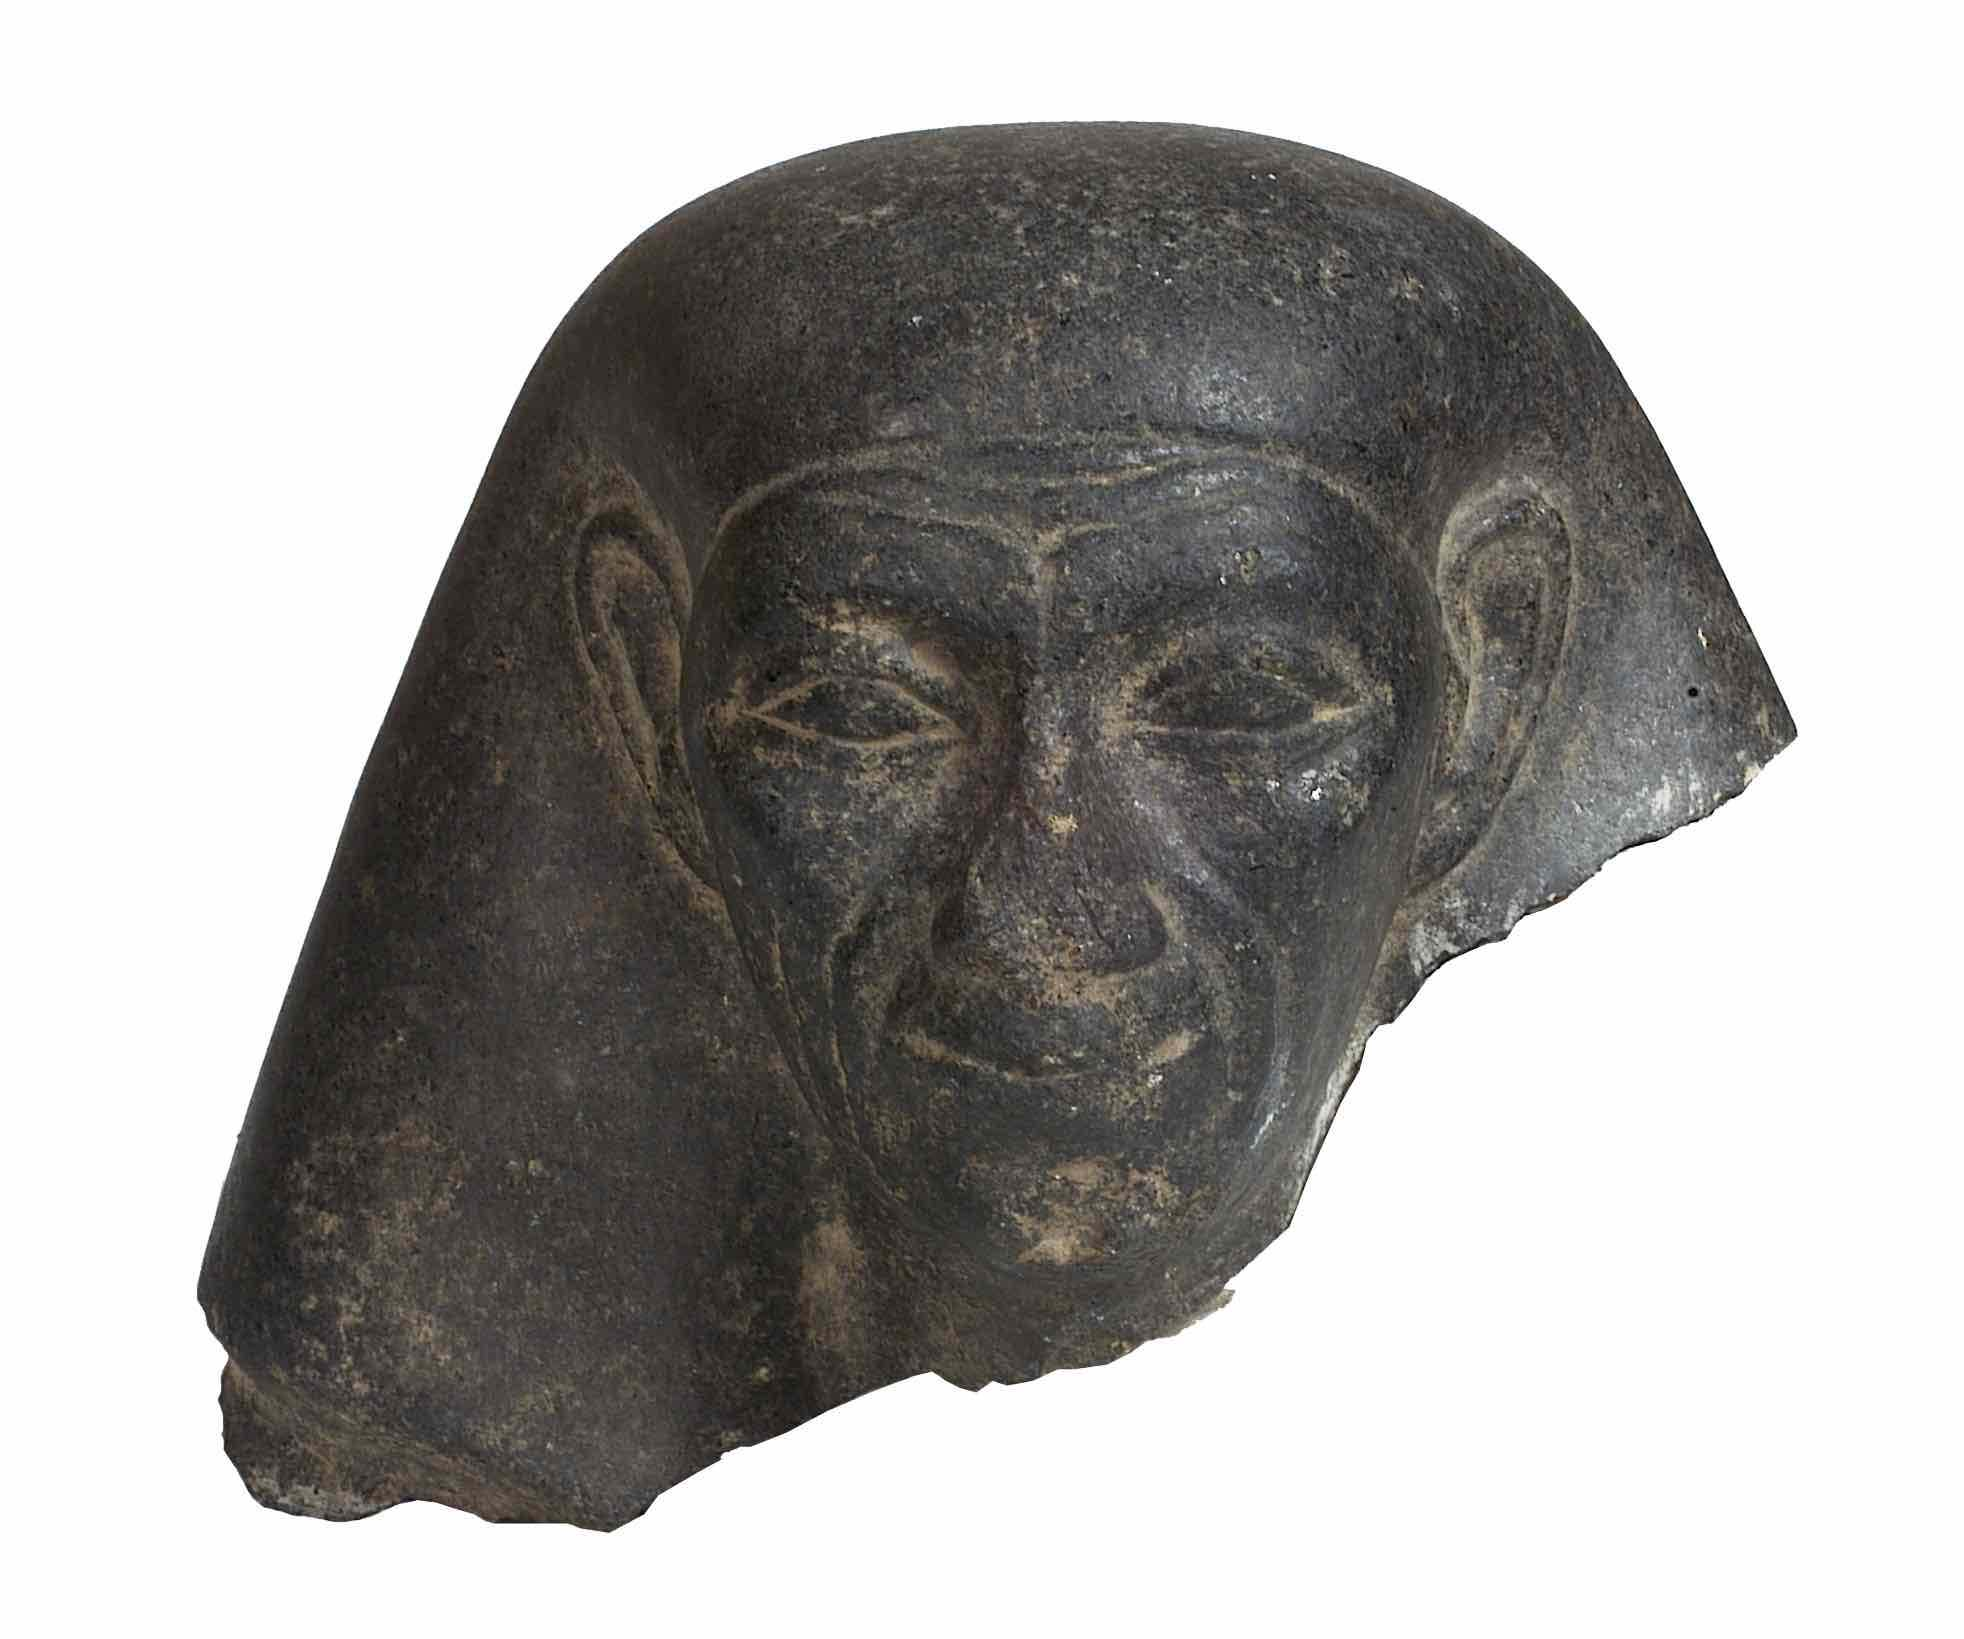 black granit head of an Egyptian male